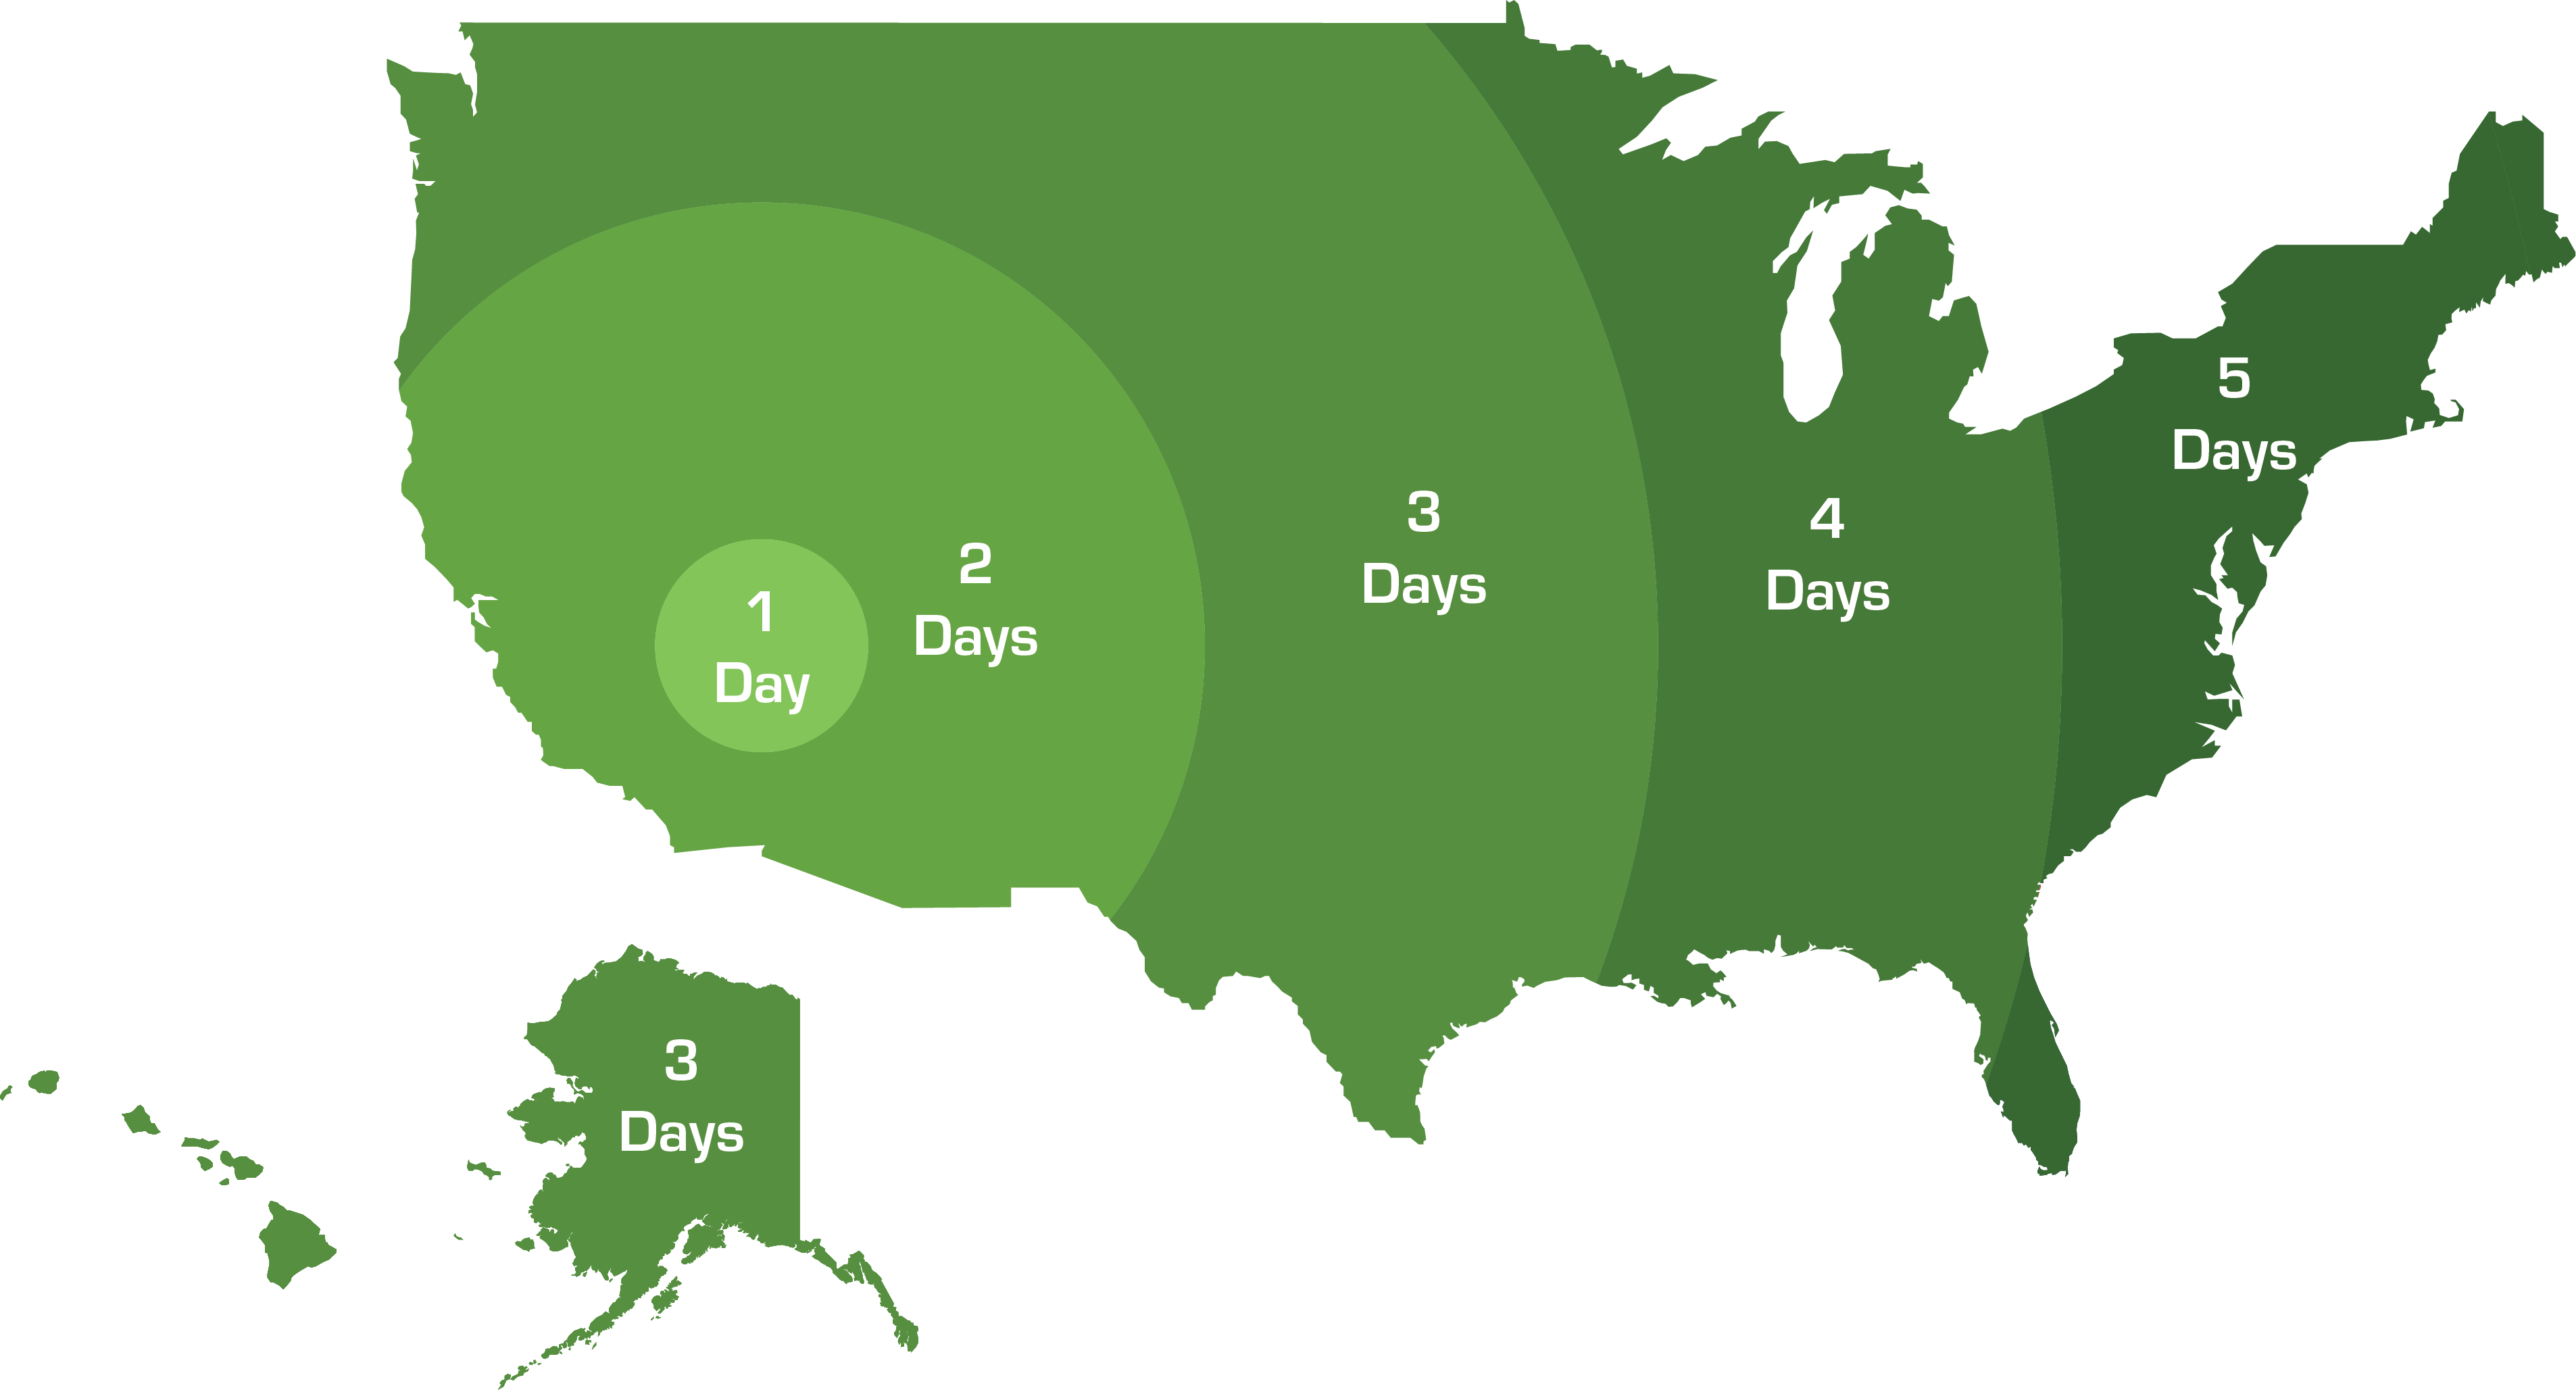 Shipping map showing 1-2 day shipping on the west coast and 3-5 day shipping to the east coast